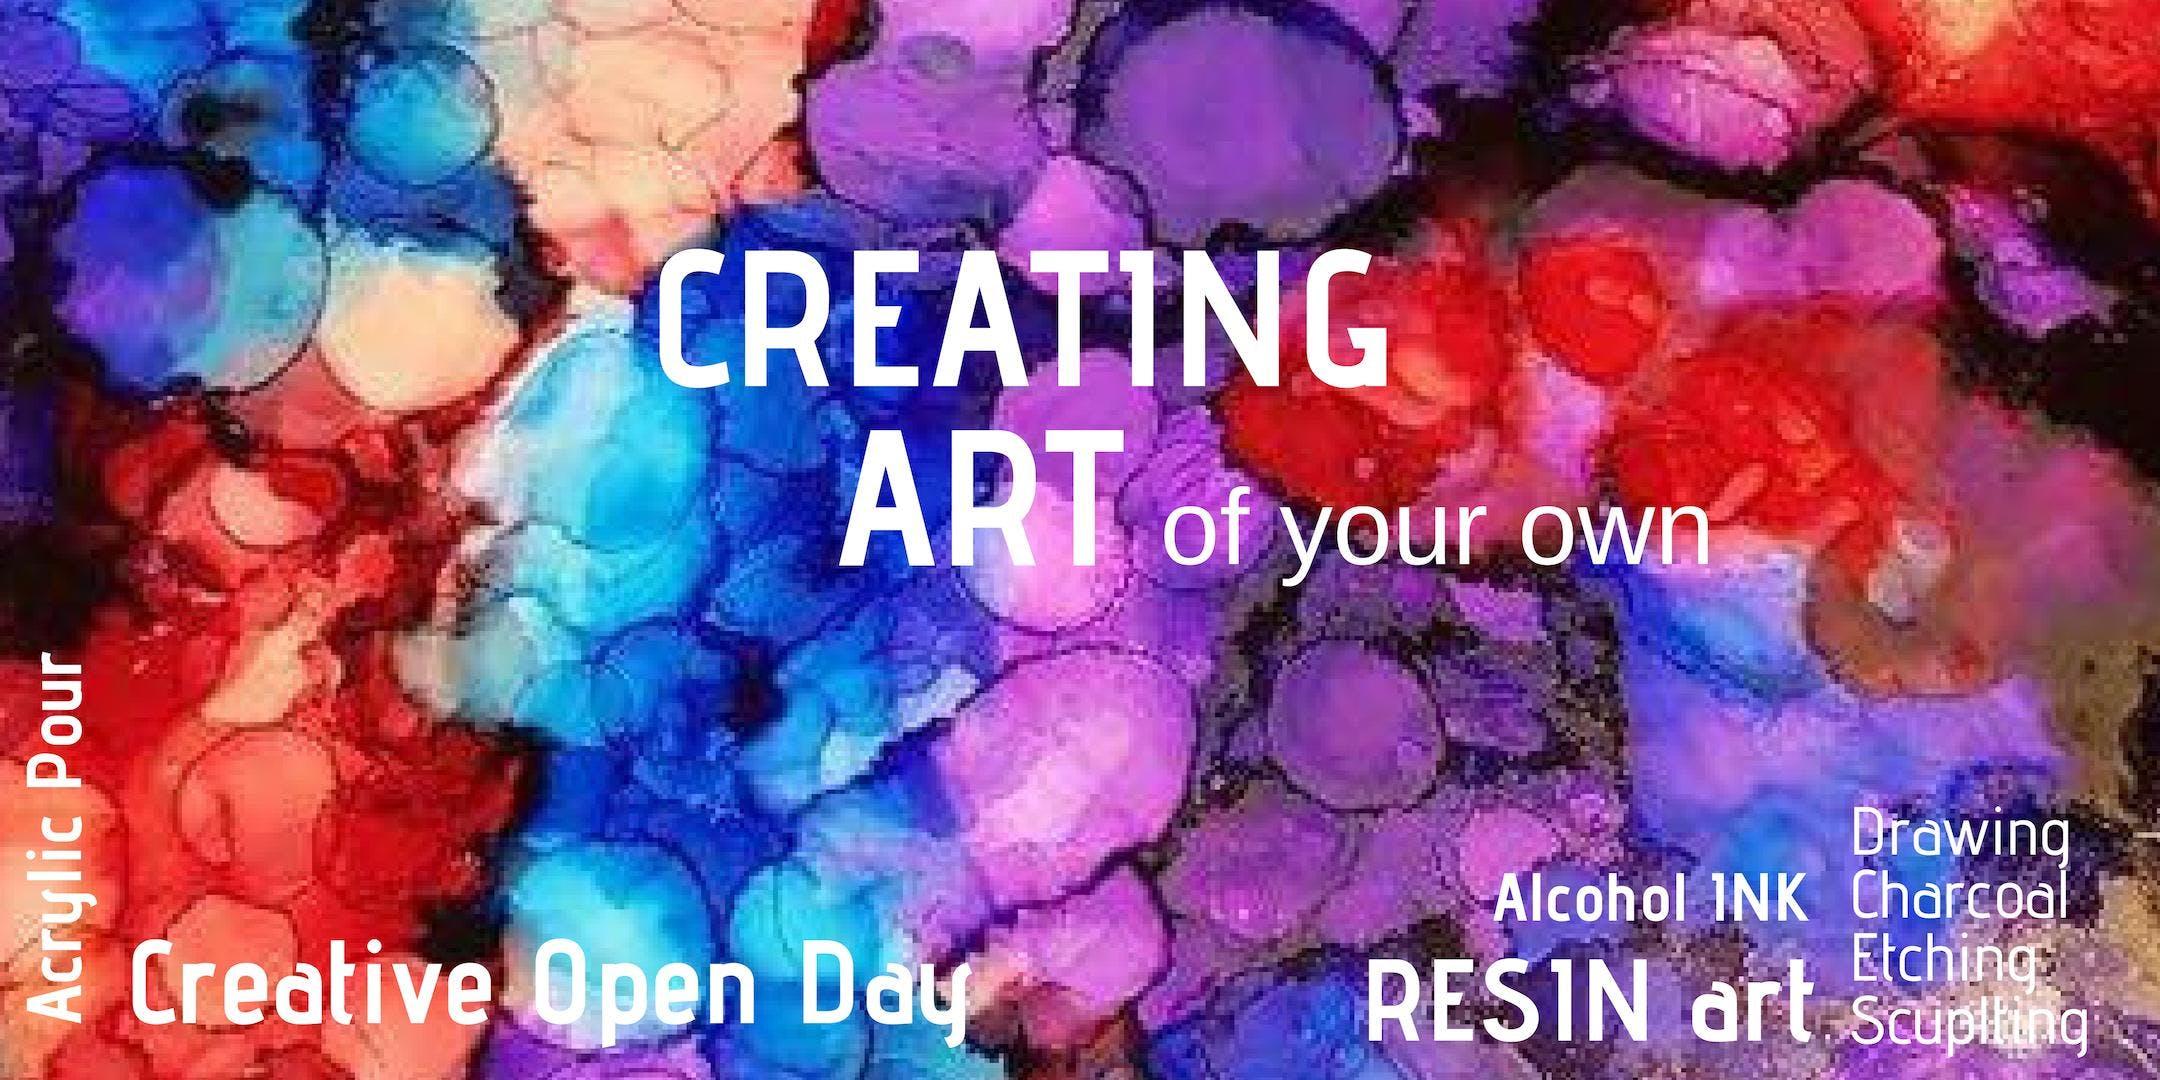 Creating Art - Saturday 13th Apr 10:00am